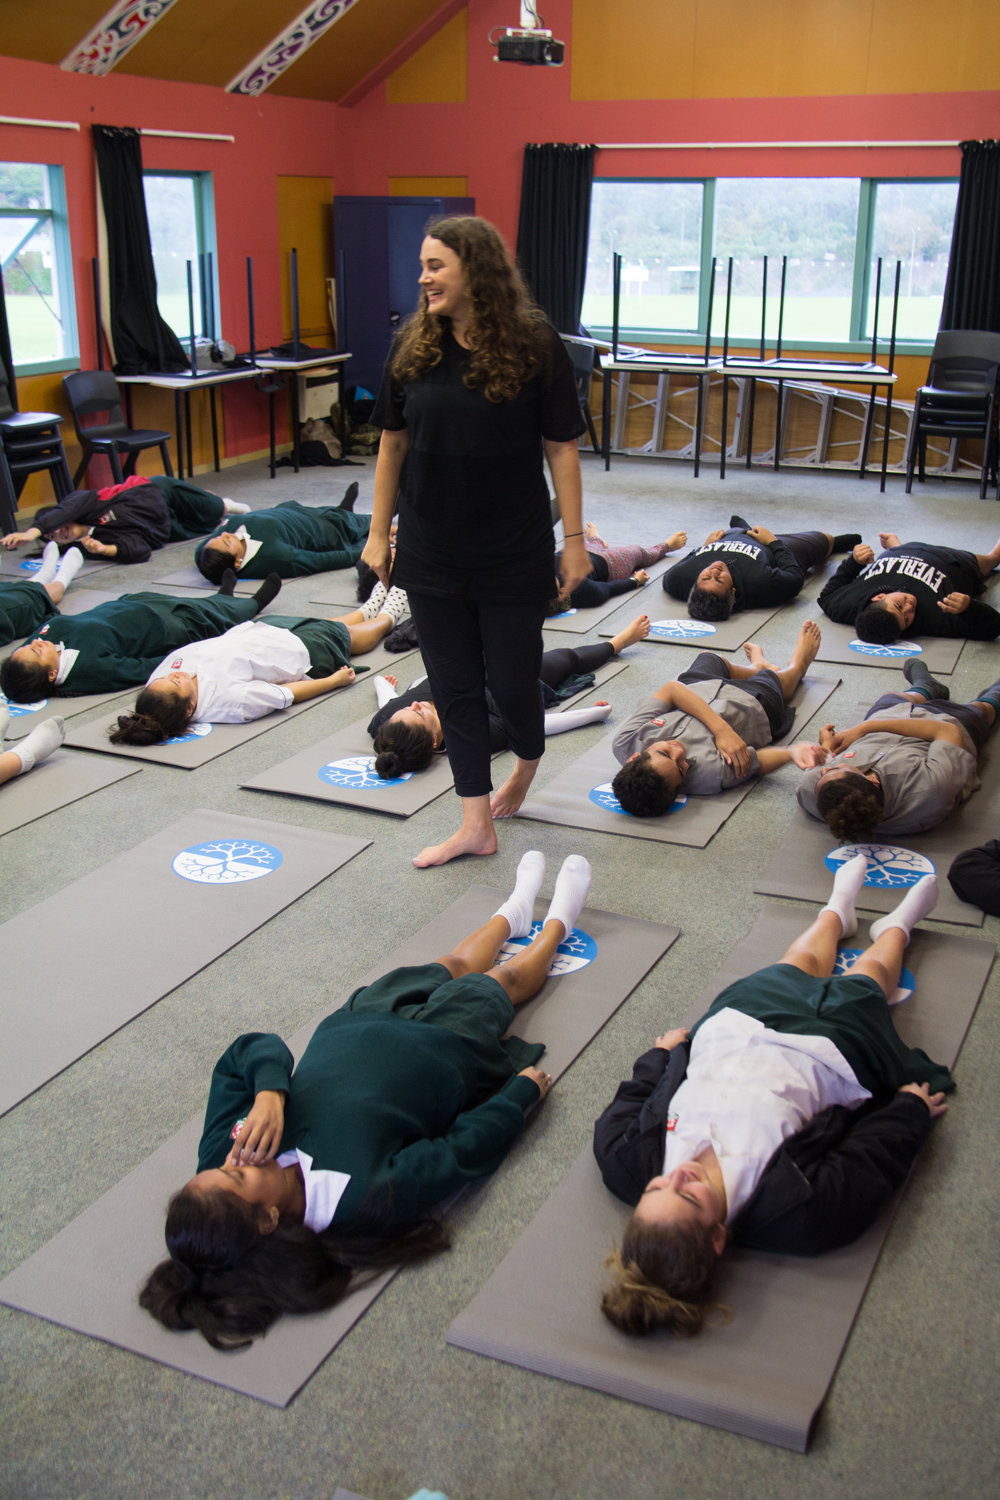 15 Mindfulness - Onehunga High.jpg